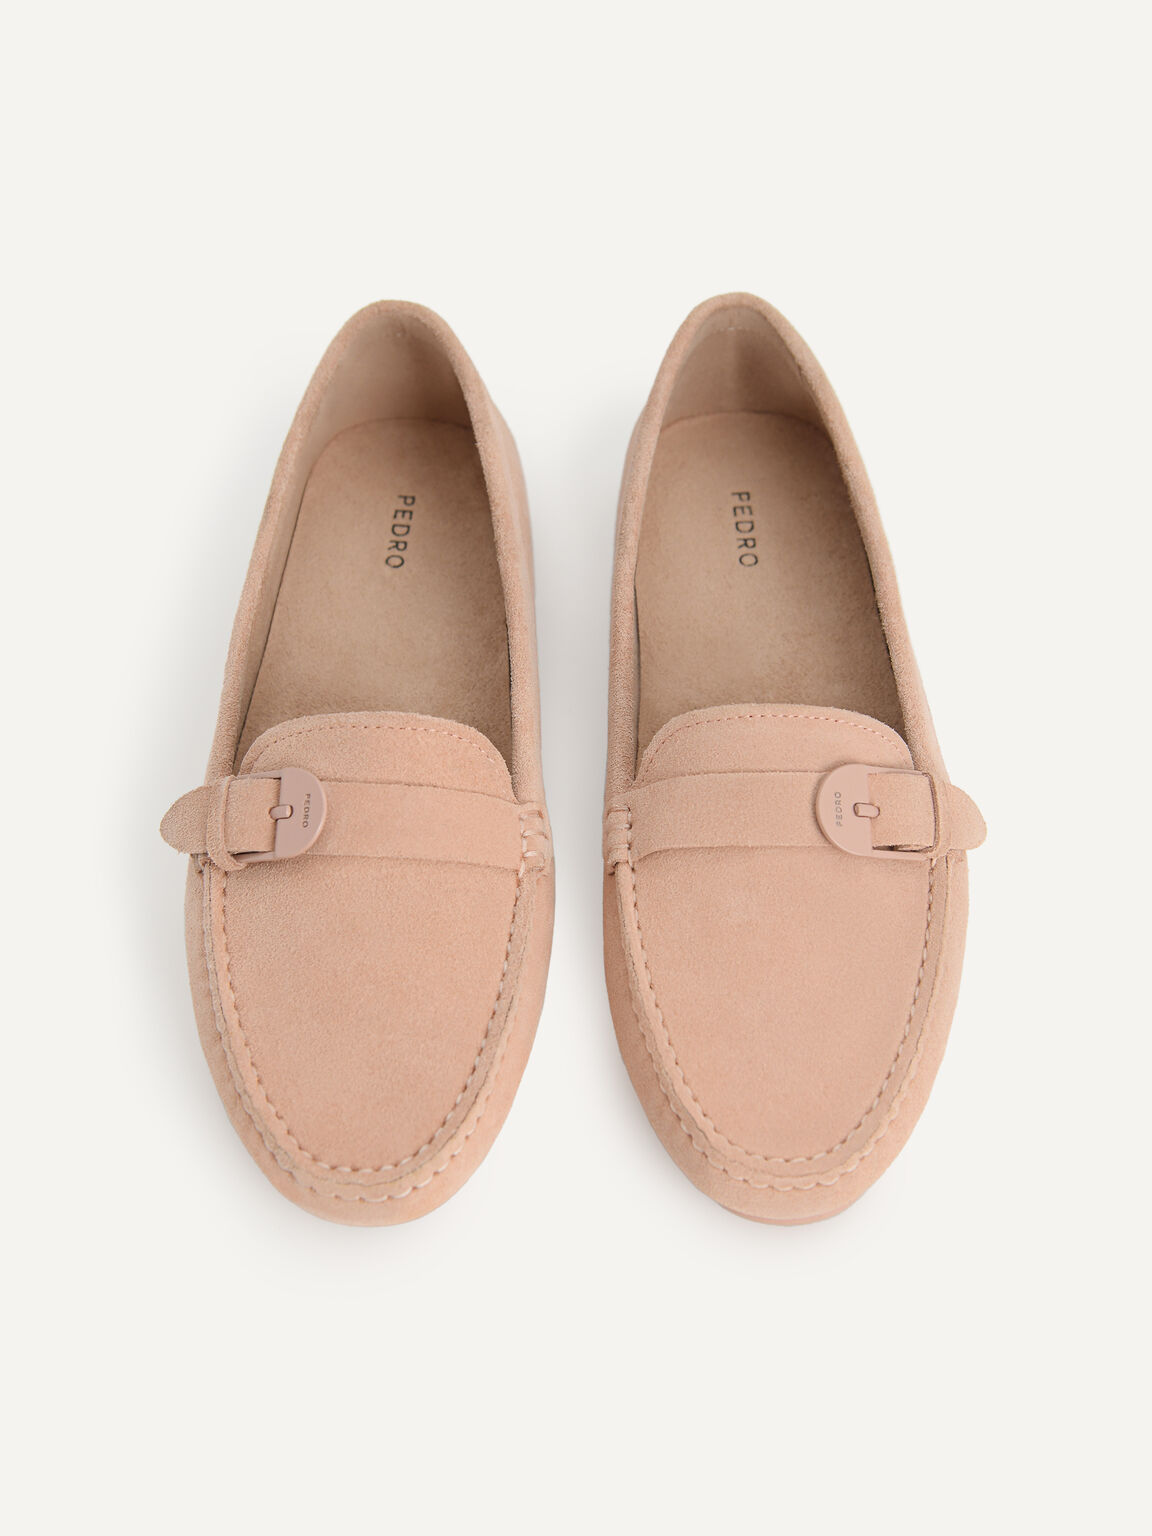 Leather Moccasins, Nude, hi-res